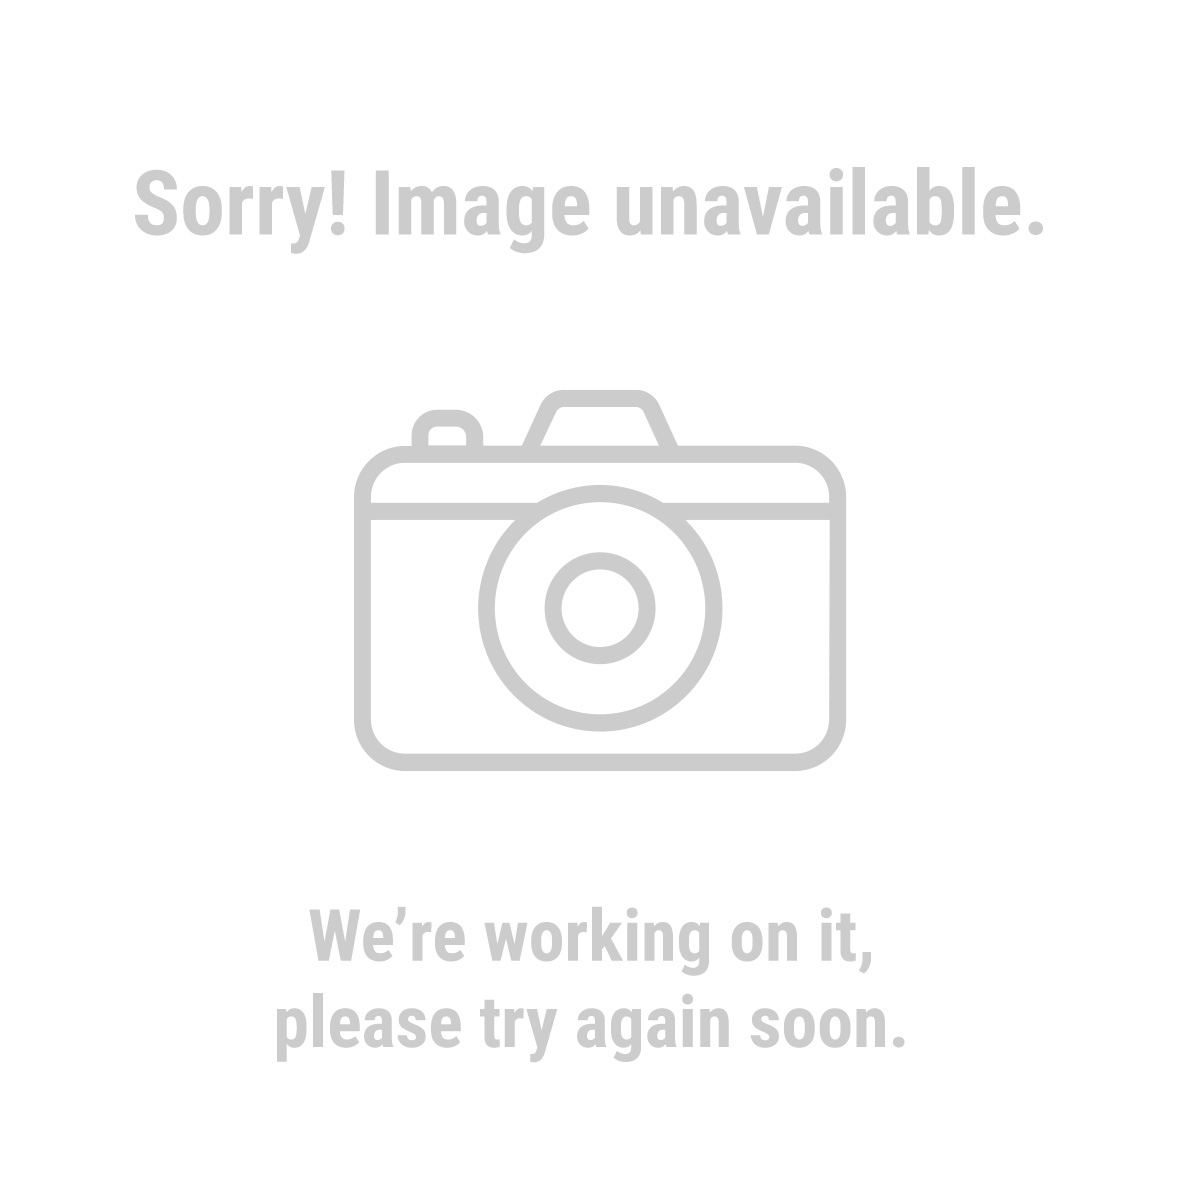 Central Pneumatic 62779 30 gal. 420cc Truck Bed Air Compressor EPA III